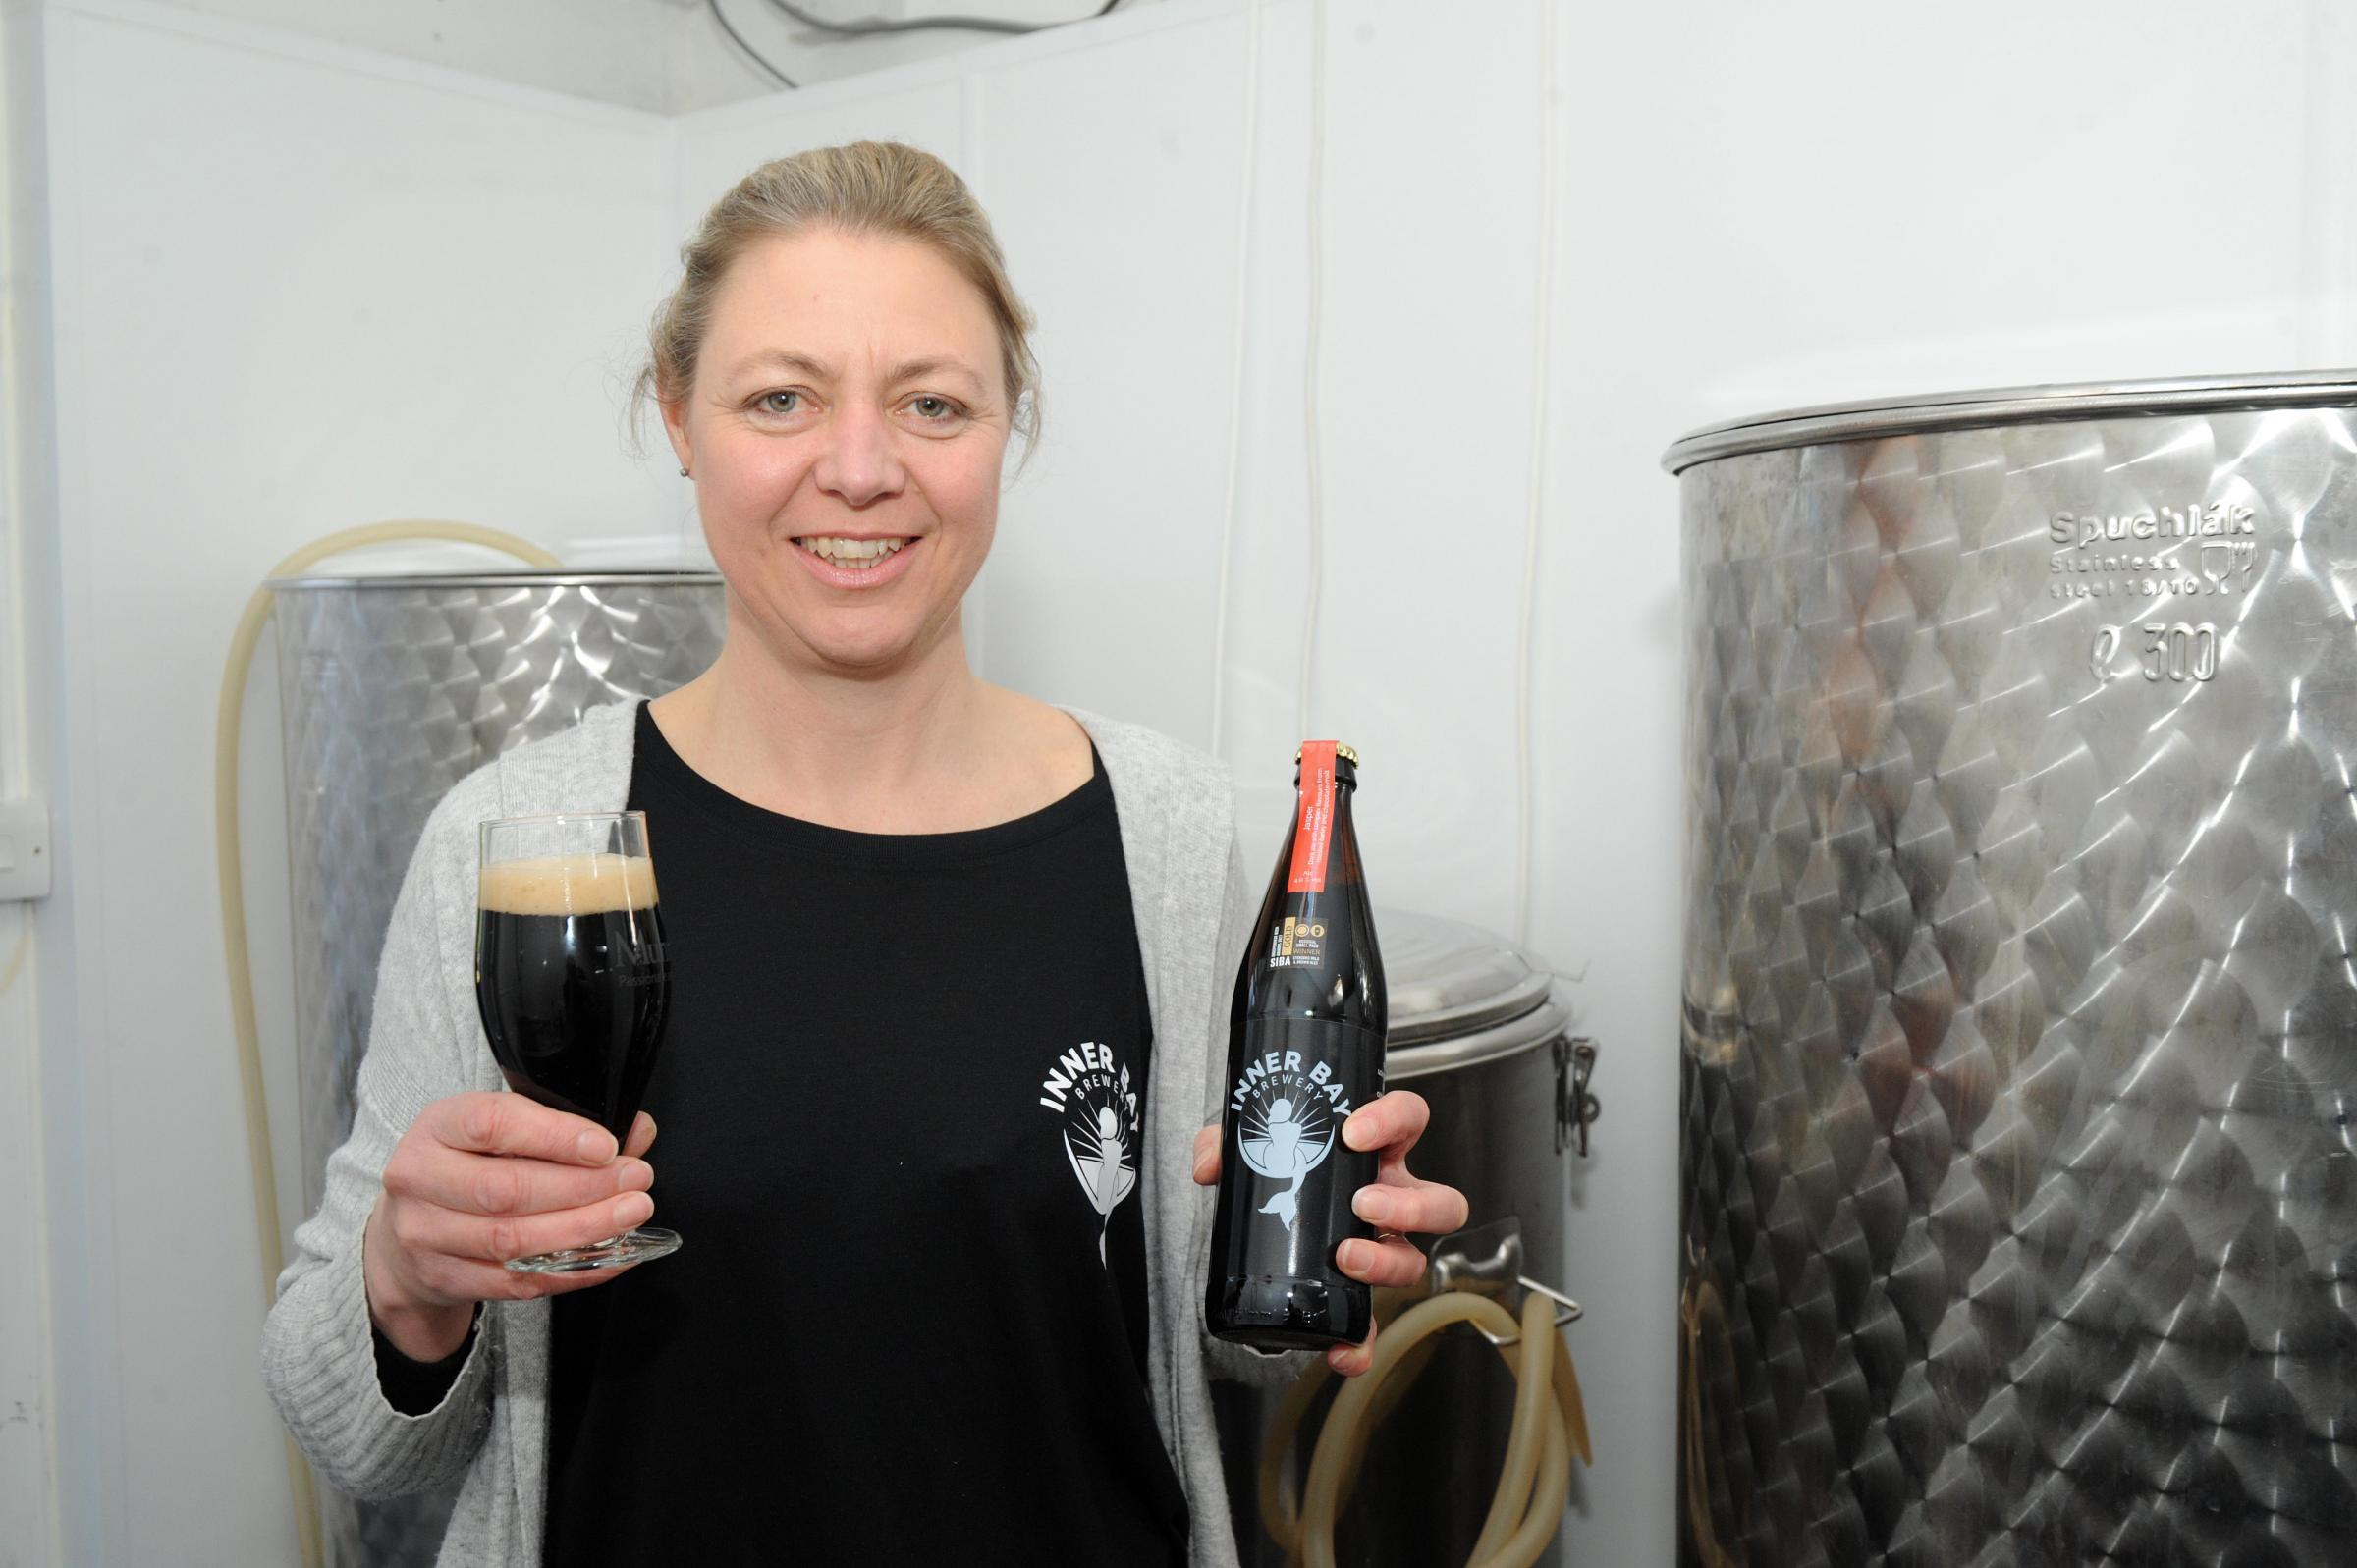 All hail to mum's ale as Inverkeithing brewery wins award